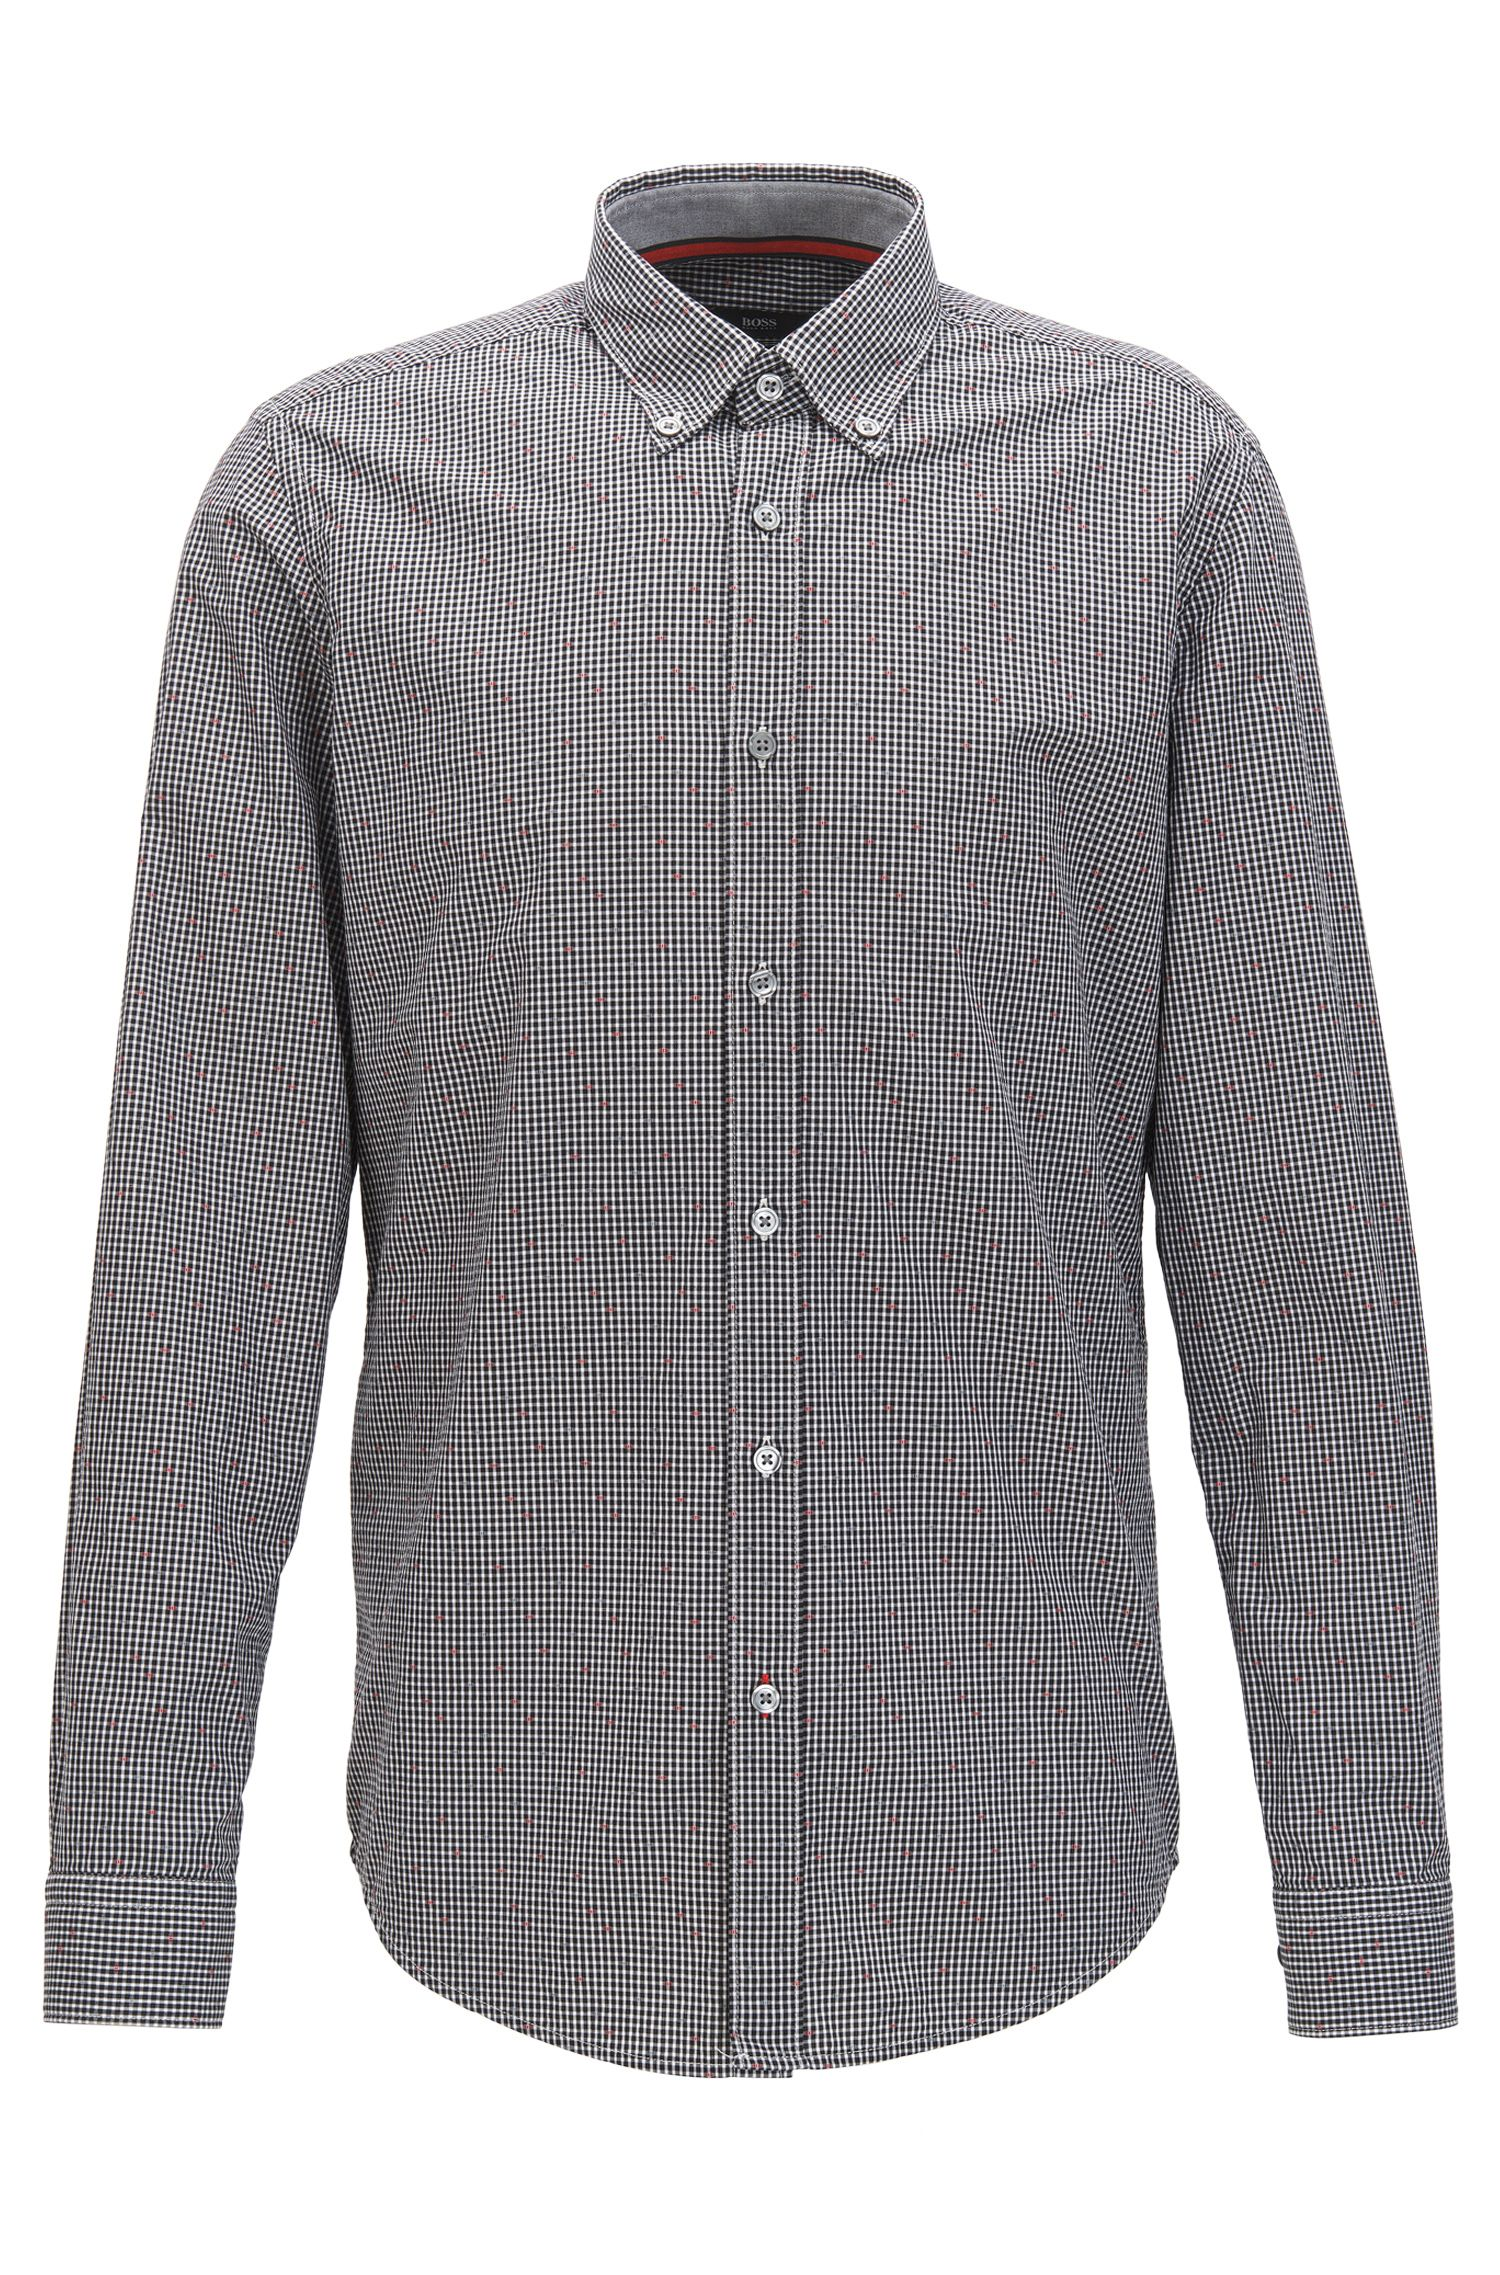 Patterned Cotton Sport Shirt, Regular Fit | Lod